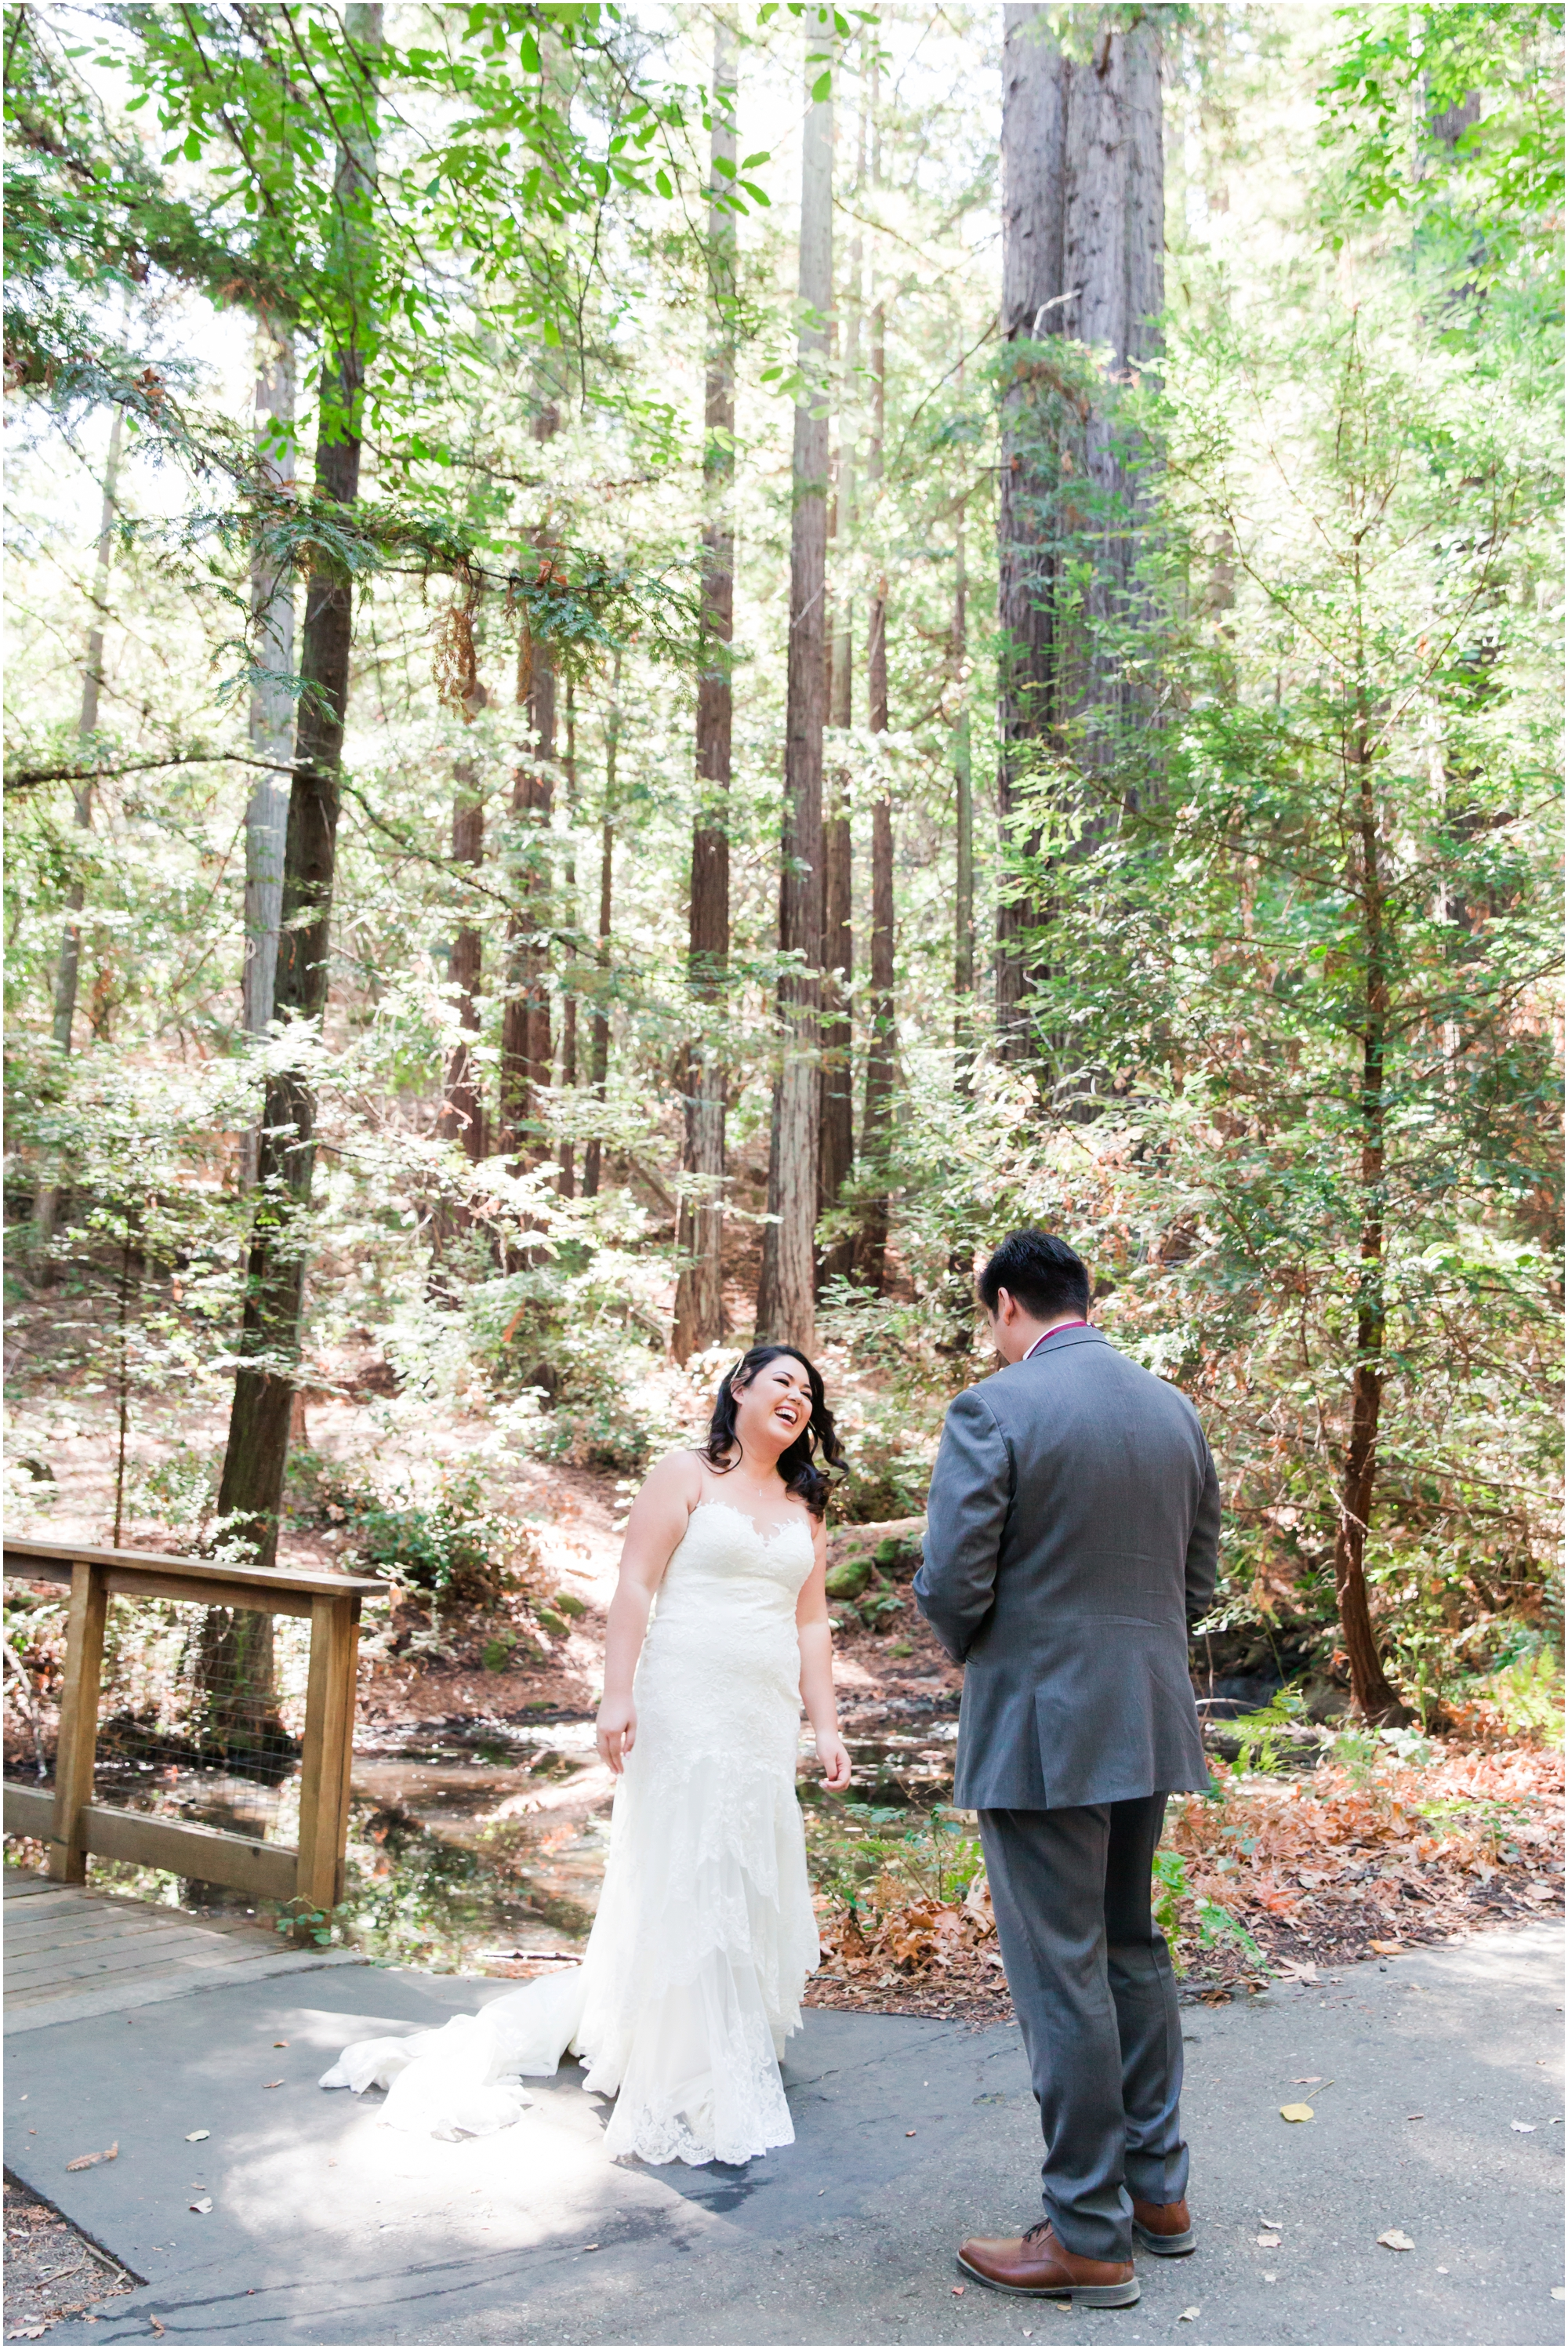 Sanborn Park Saratoga wedding pictures by Briana Calderon Photography_0114.jpg